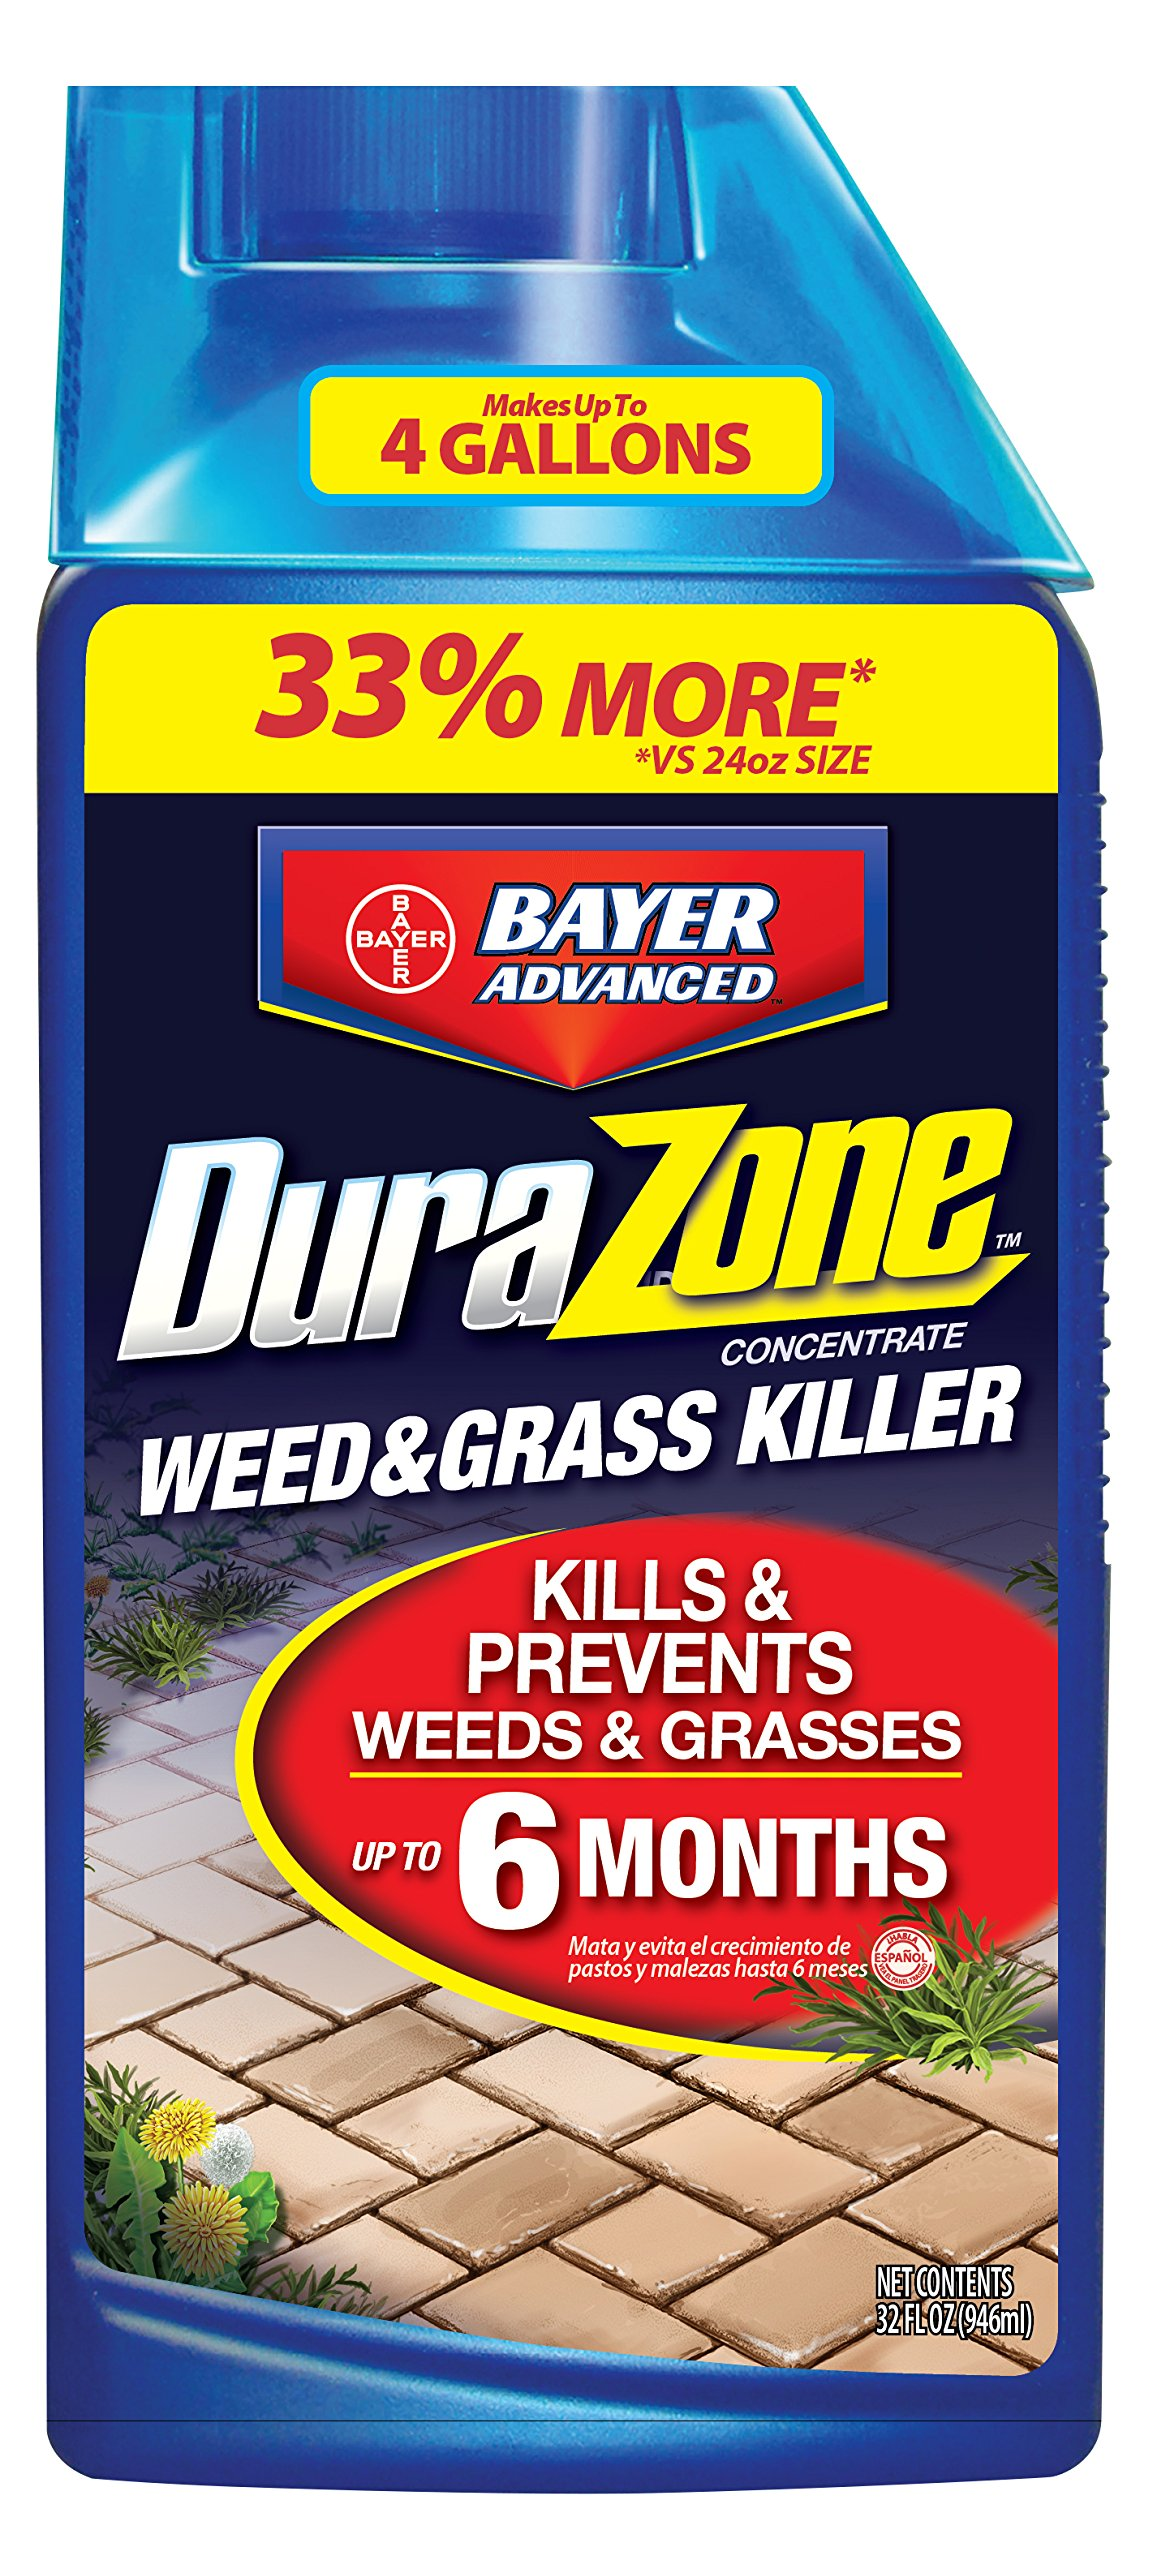 DuraZone Weed & Grass Killer Concentrate, 32-Ounce by Bayer Advanced DuraZone